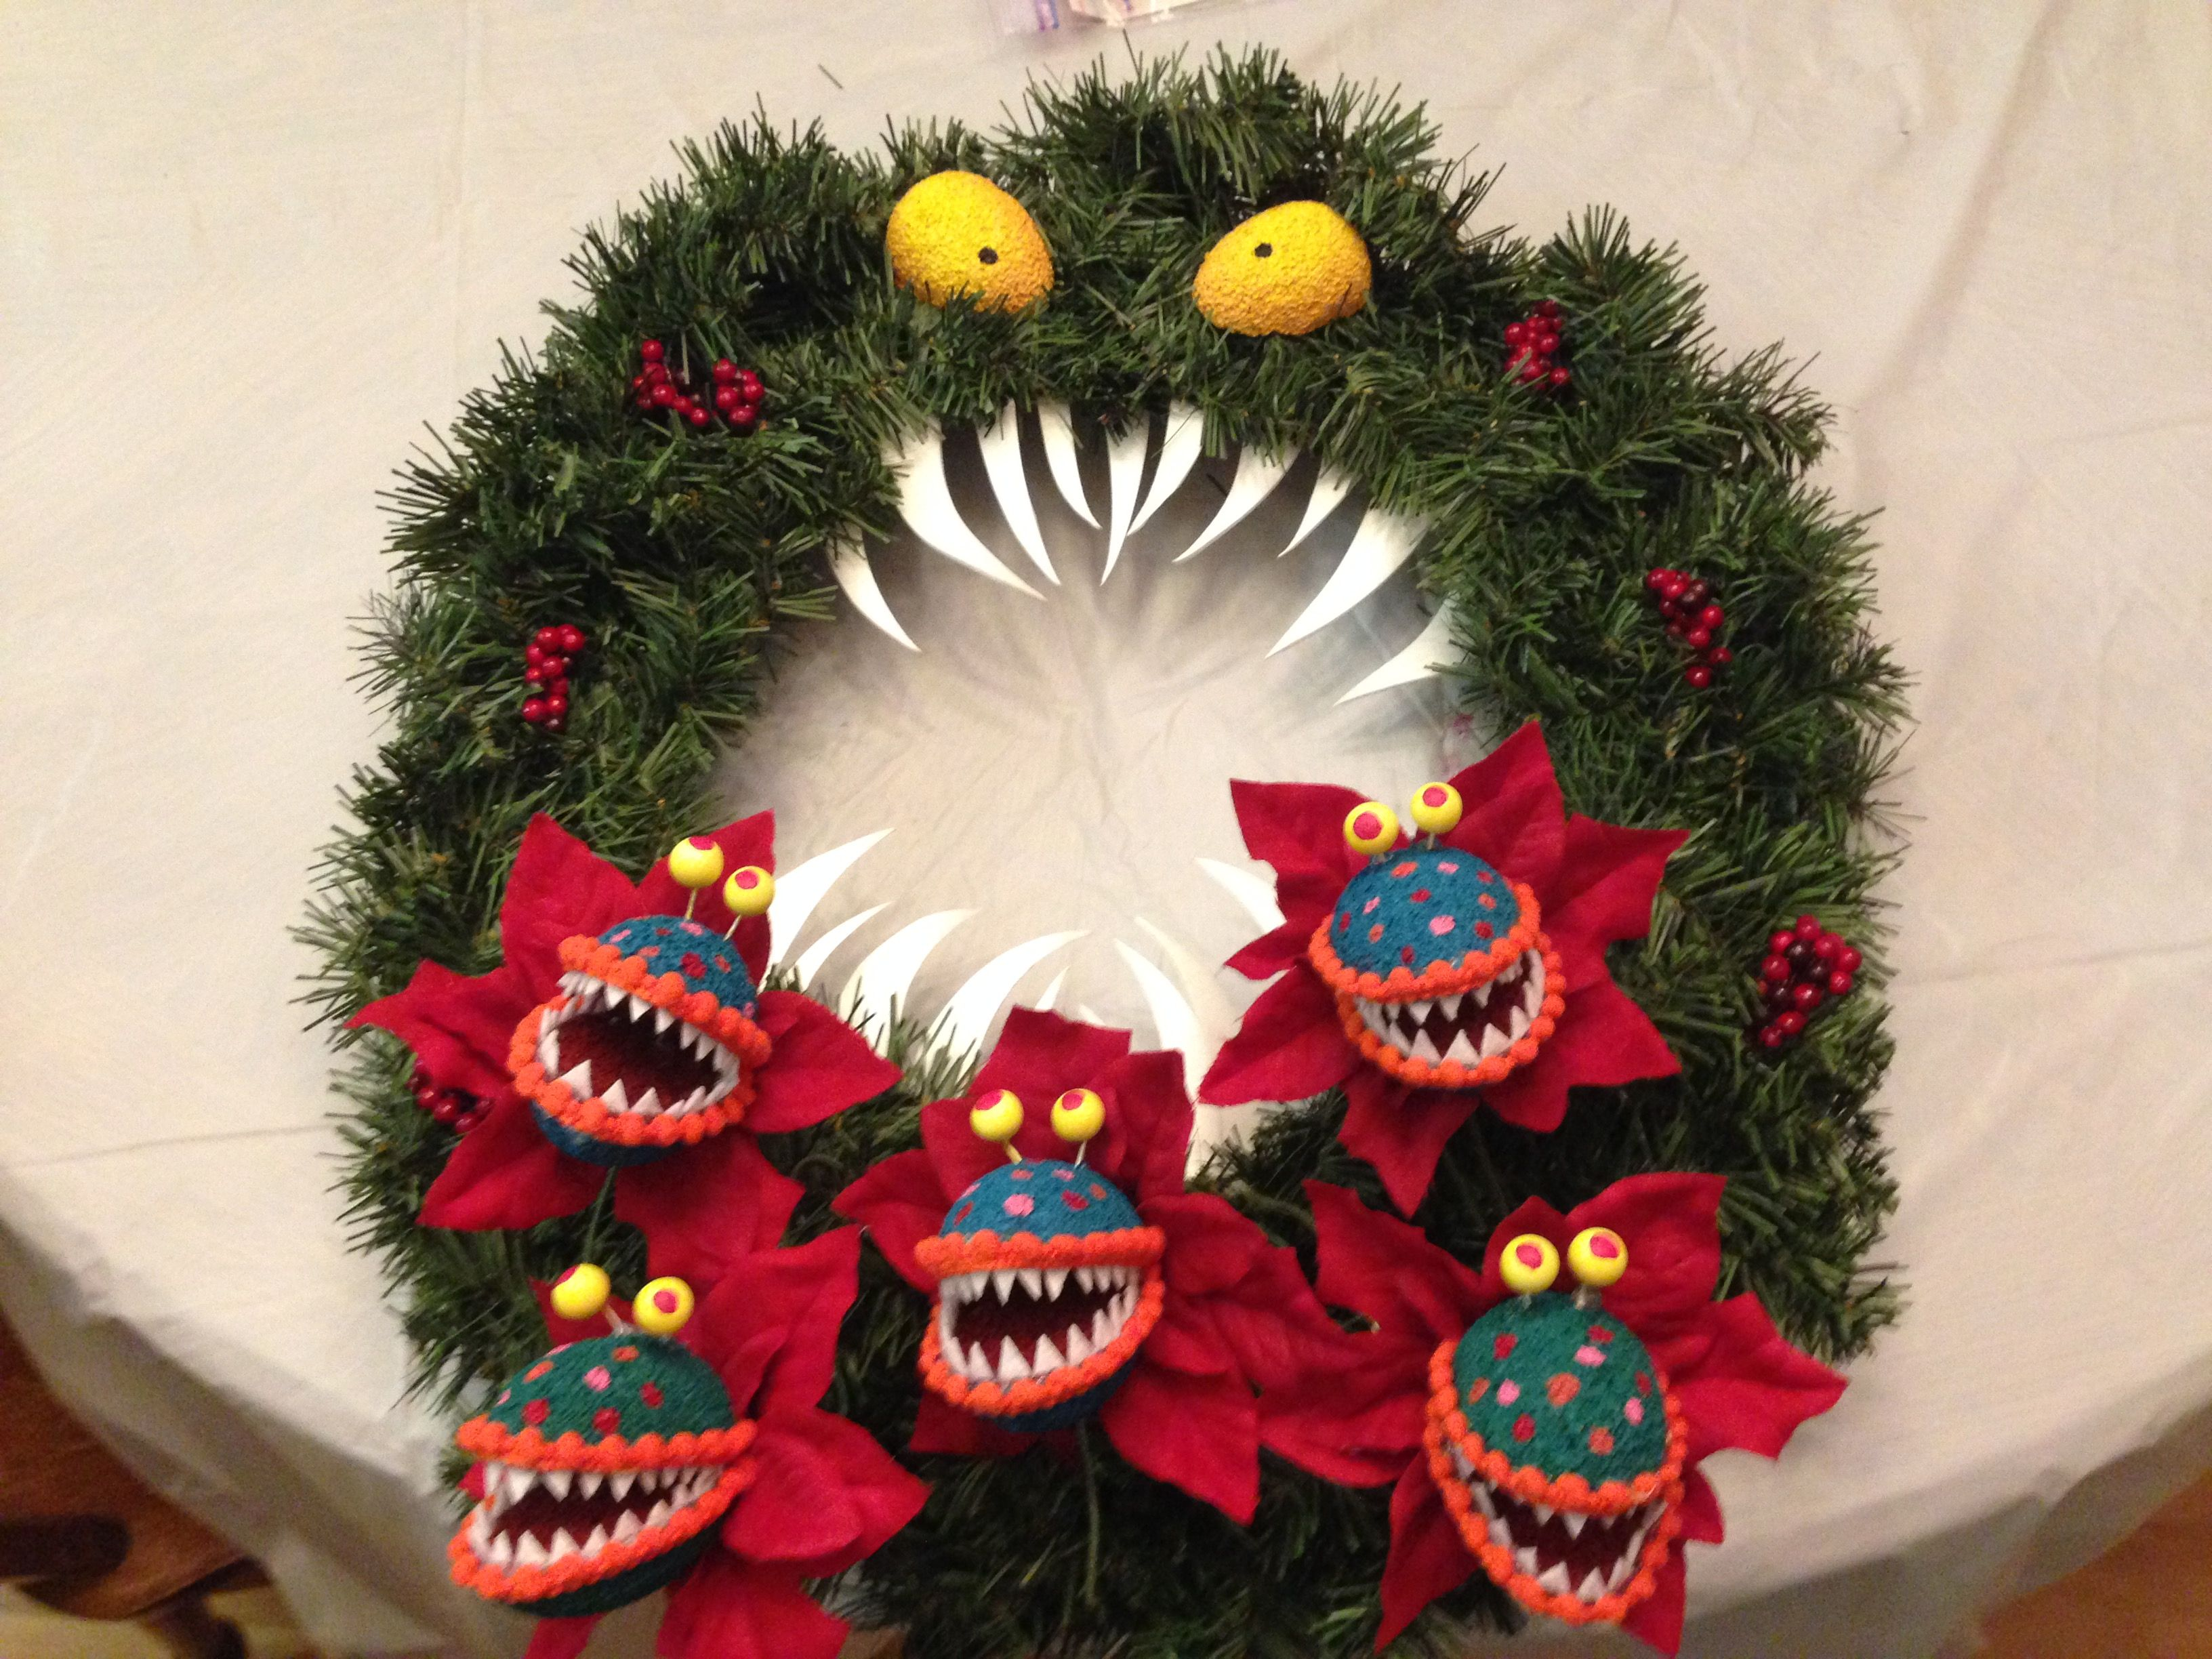 Wreath Monster Decor I Made Inspired By The Haunted Mansion